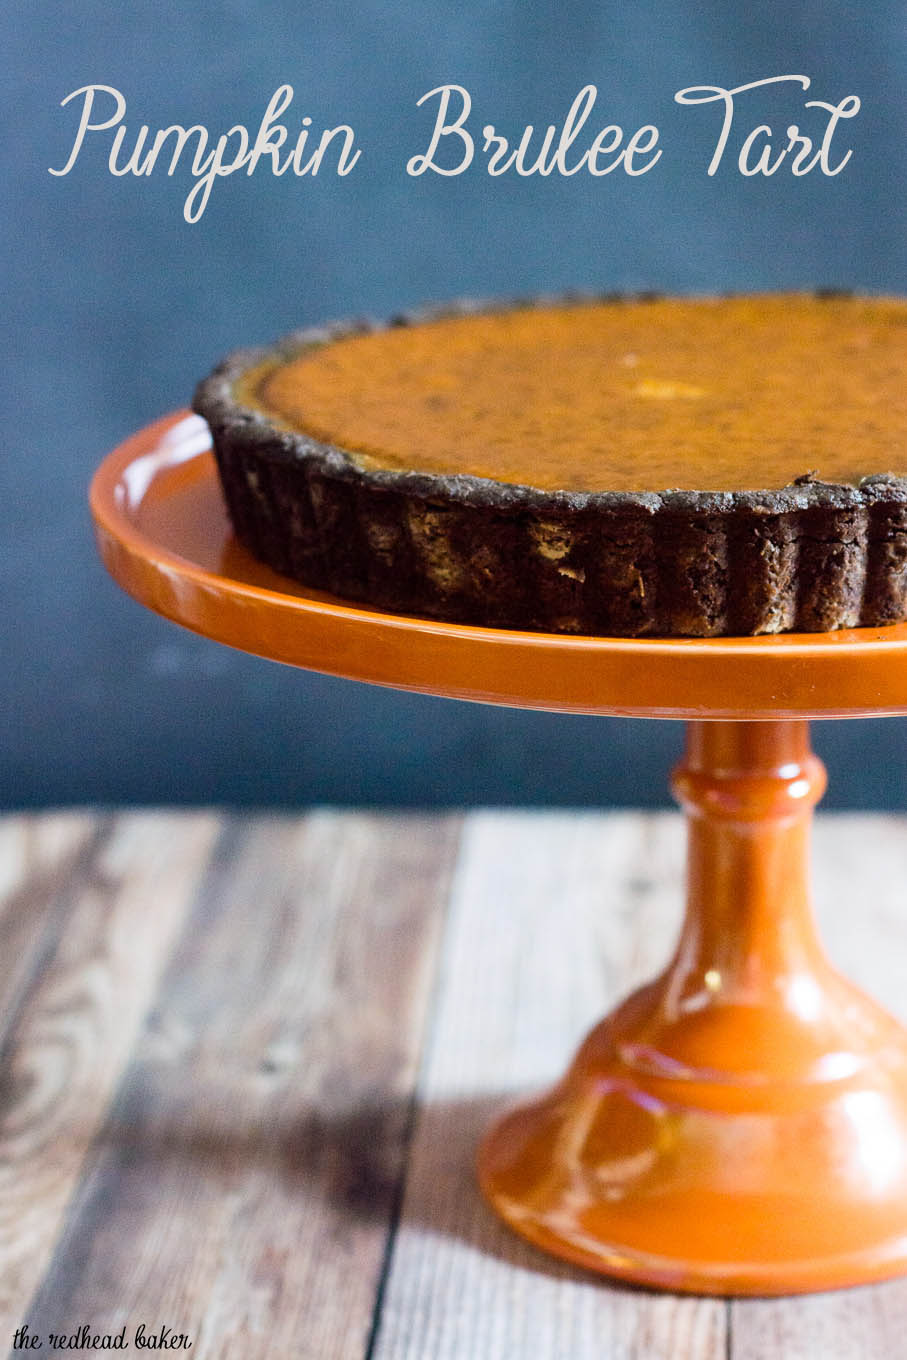 Move over, classic pumpkin pie! Pumpkin brulee tart has a spiced pumpkin custard filling baked in a dark chocolate tart shell with a bruleed sugar topping. #PumpkinWeek